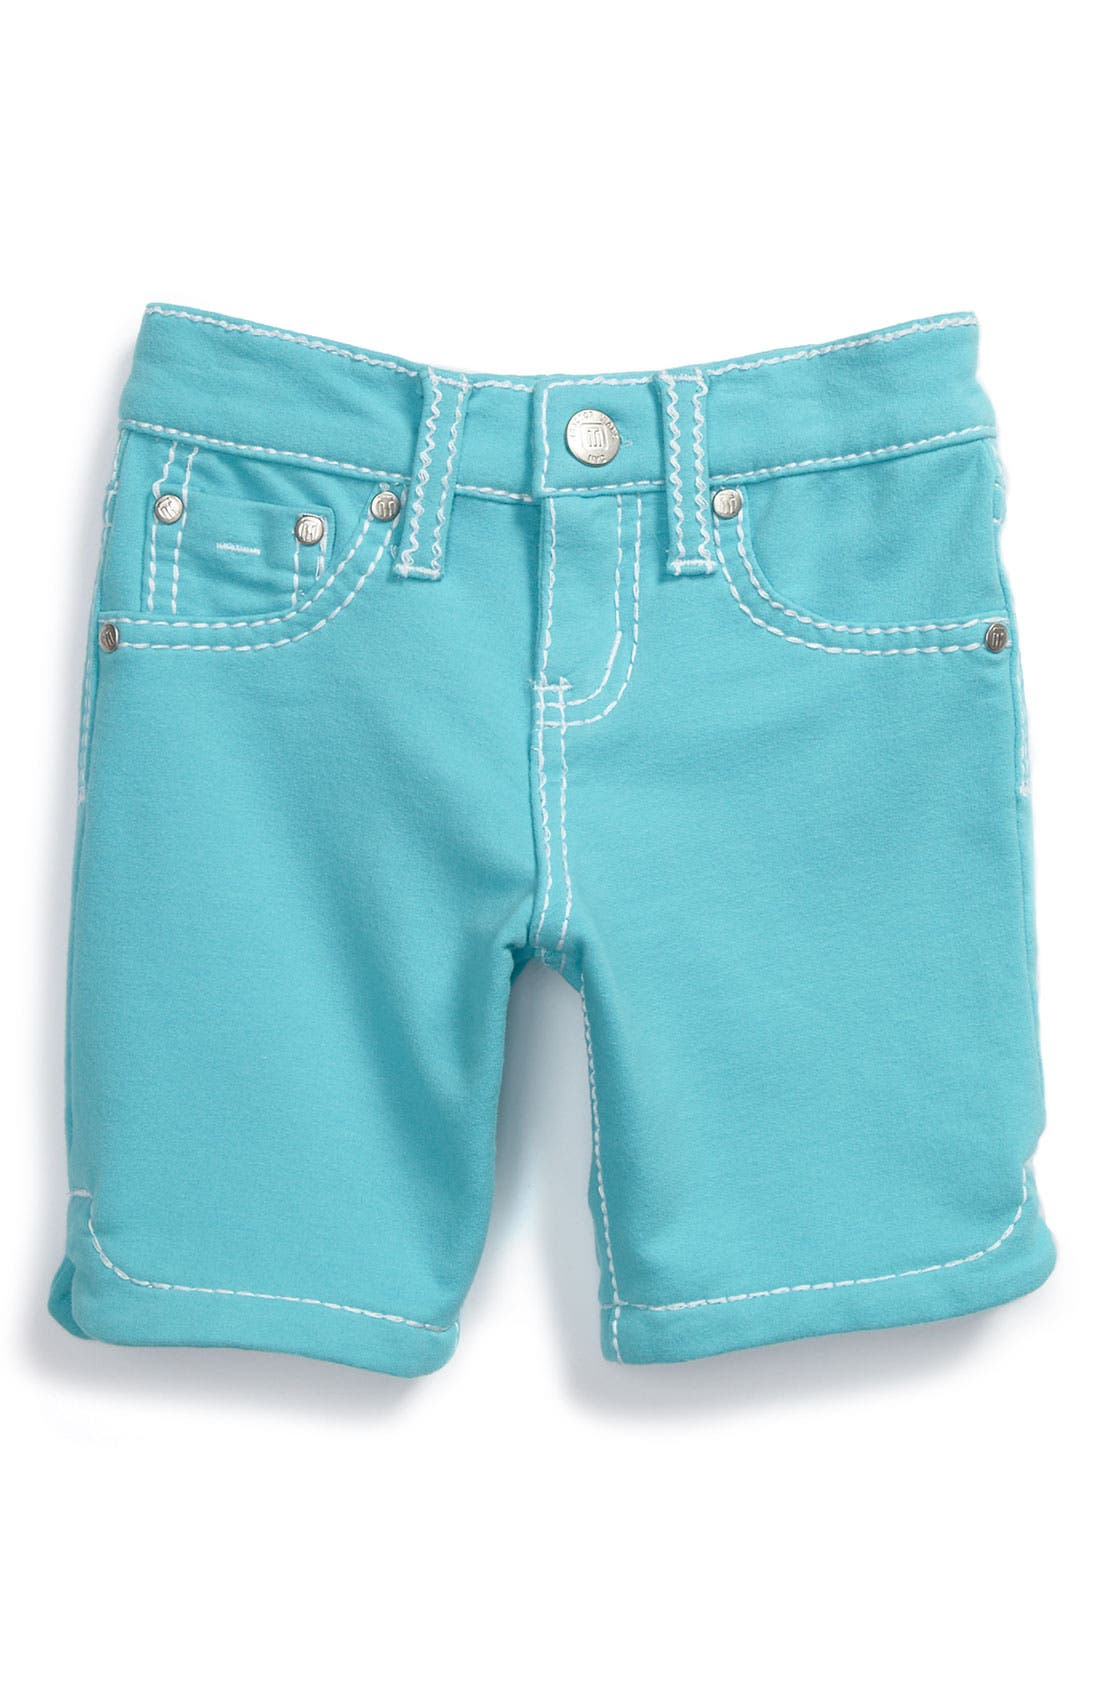 Alternate Image 2  - Tractr 'Heart Pocket' French Terry Bermuda Shorts (Little Girls)